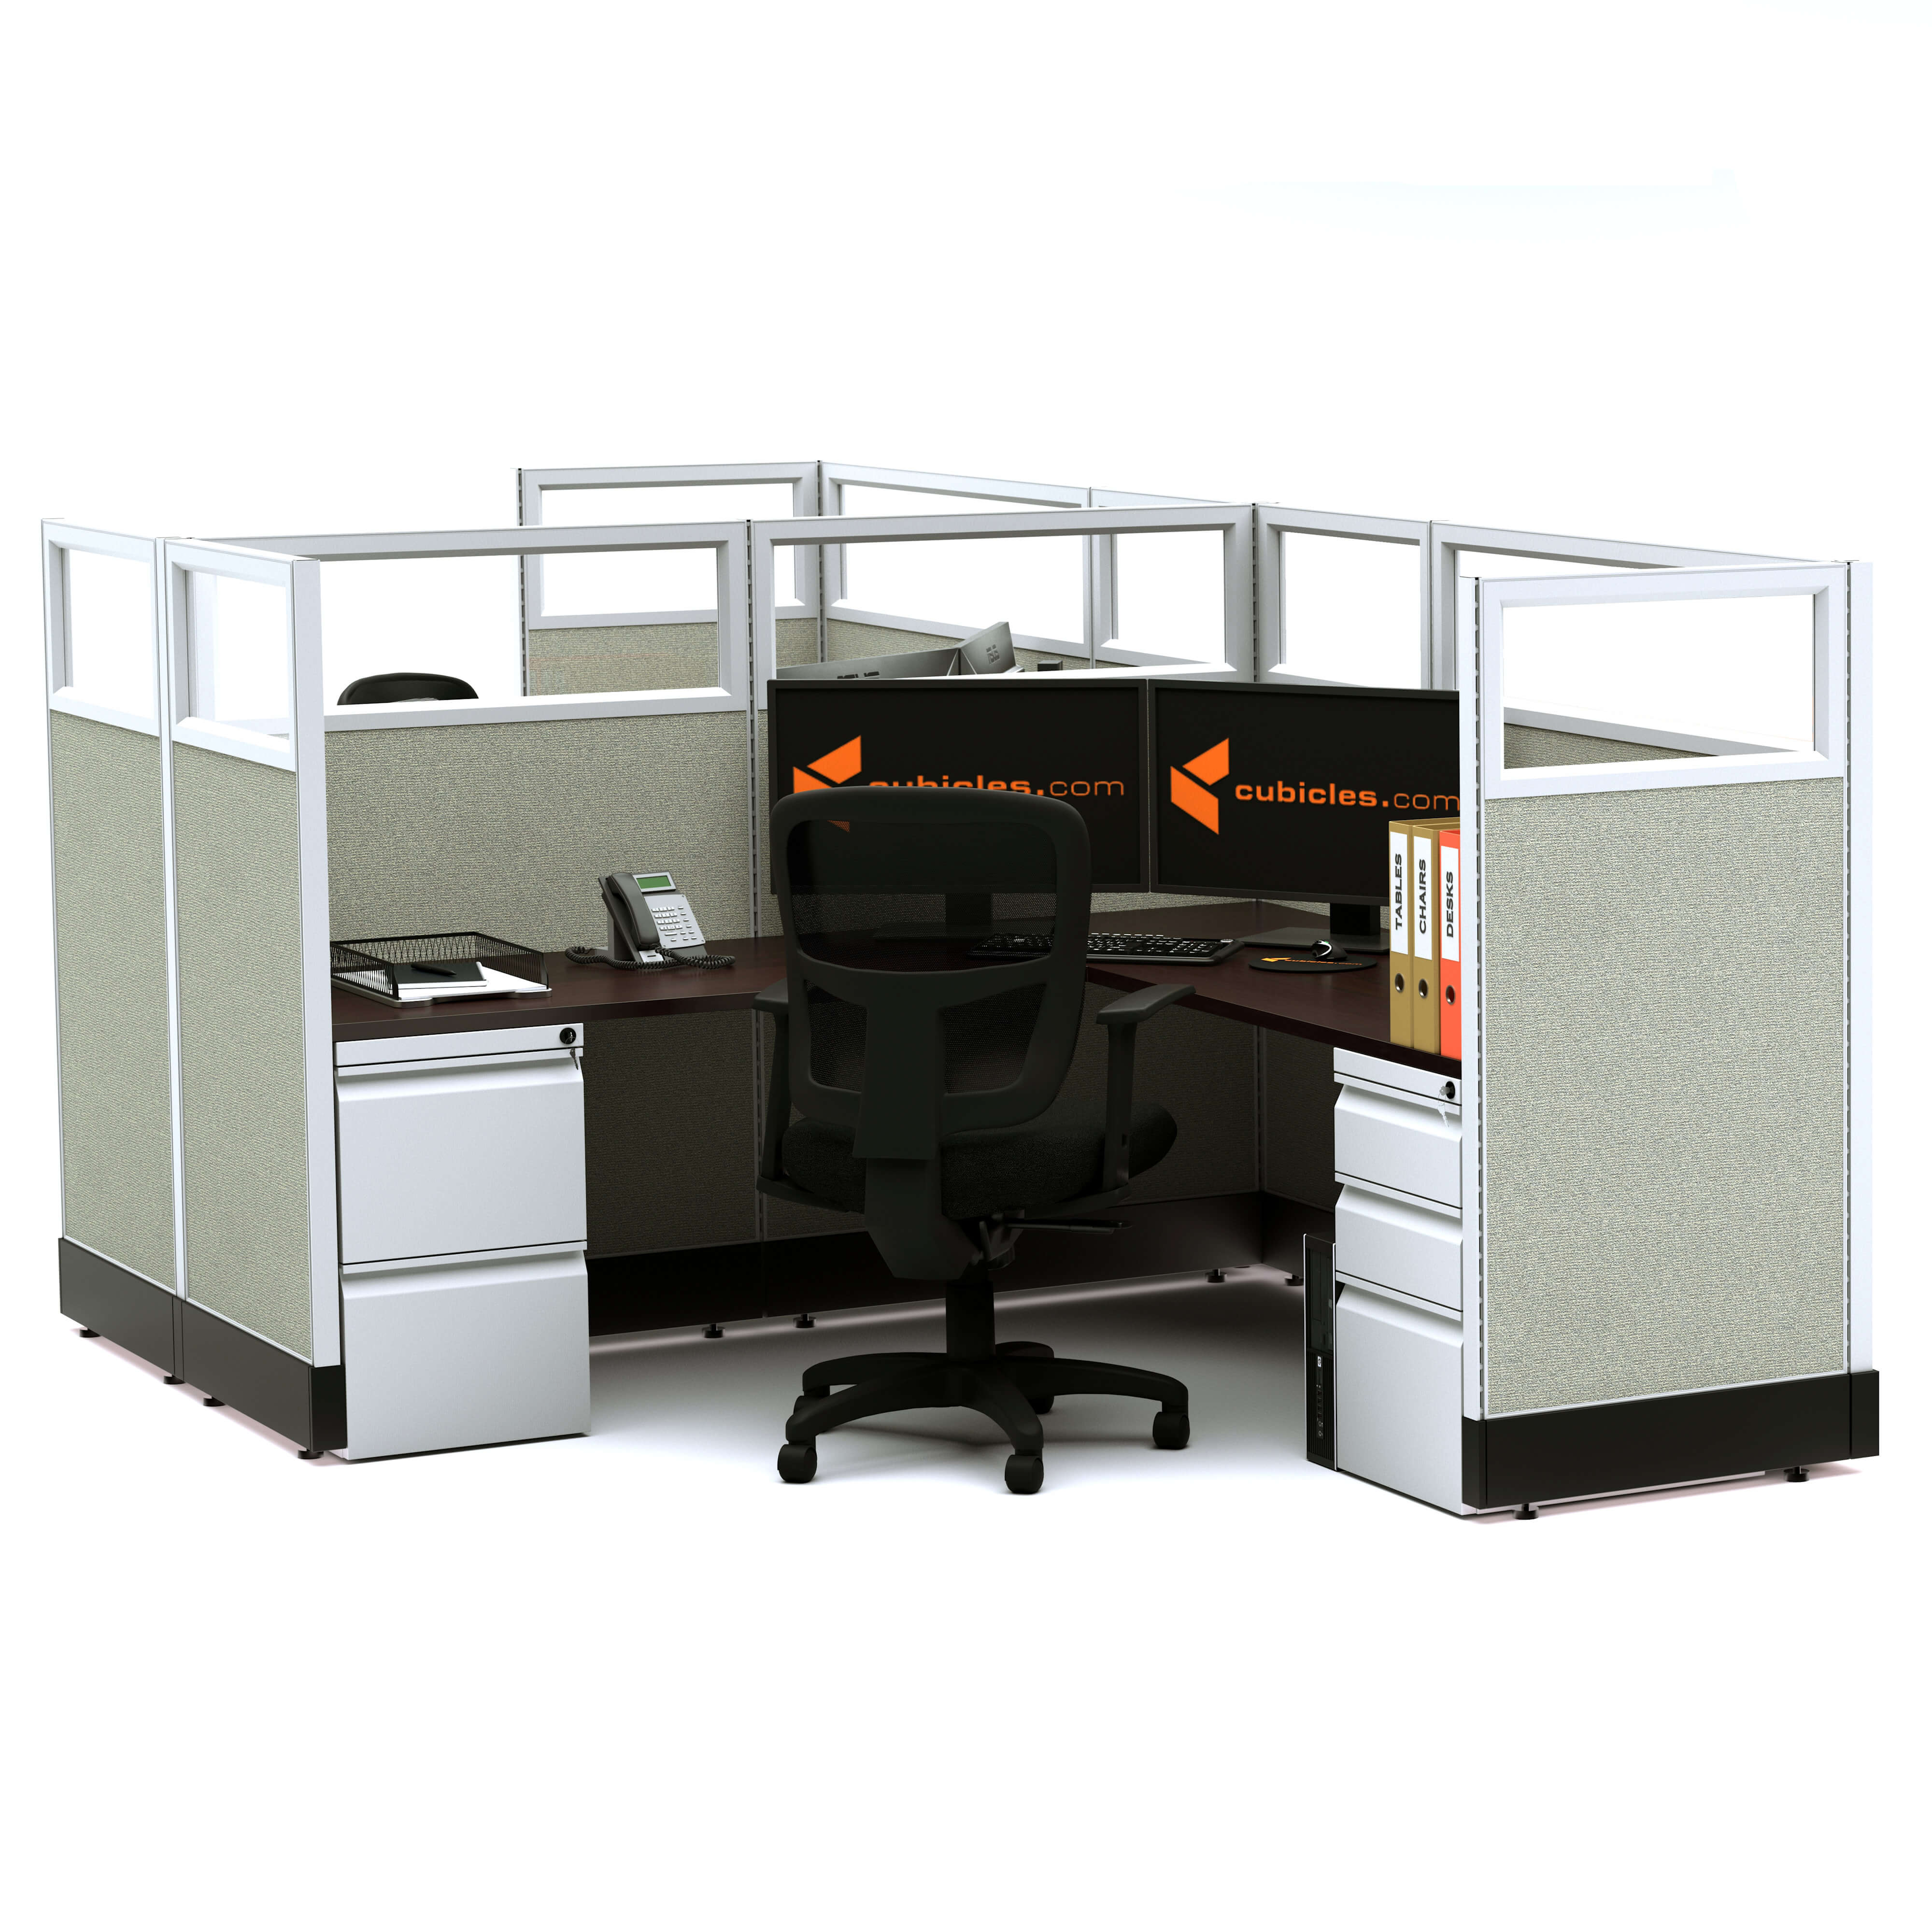 glass-office-cubicles-53h-2pack-cluster-unpowered.jpg